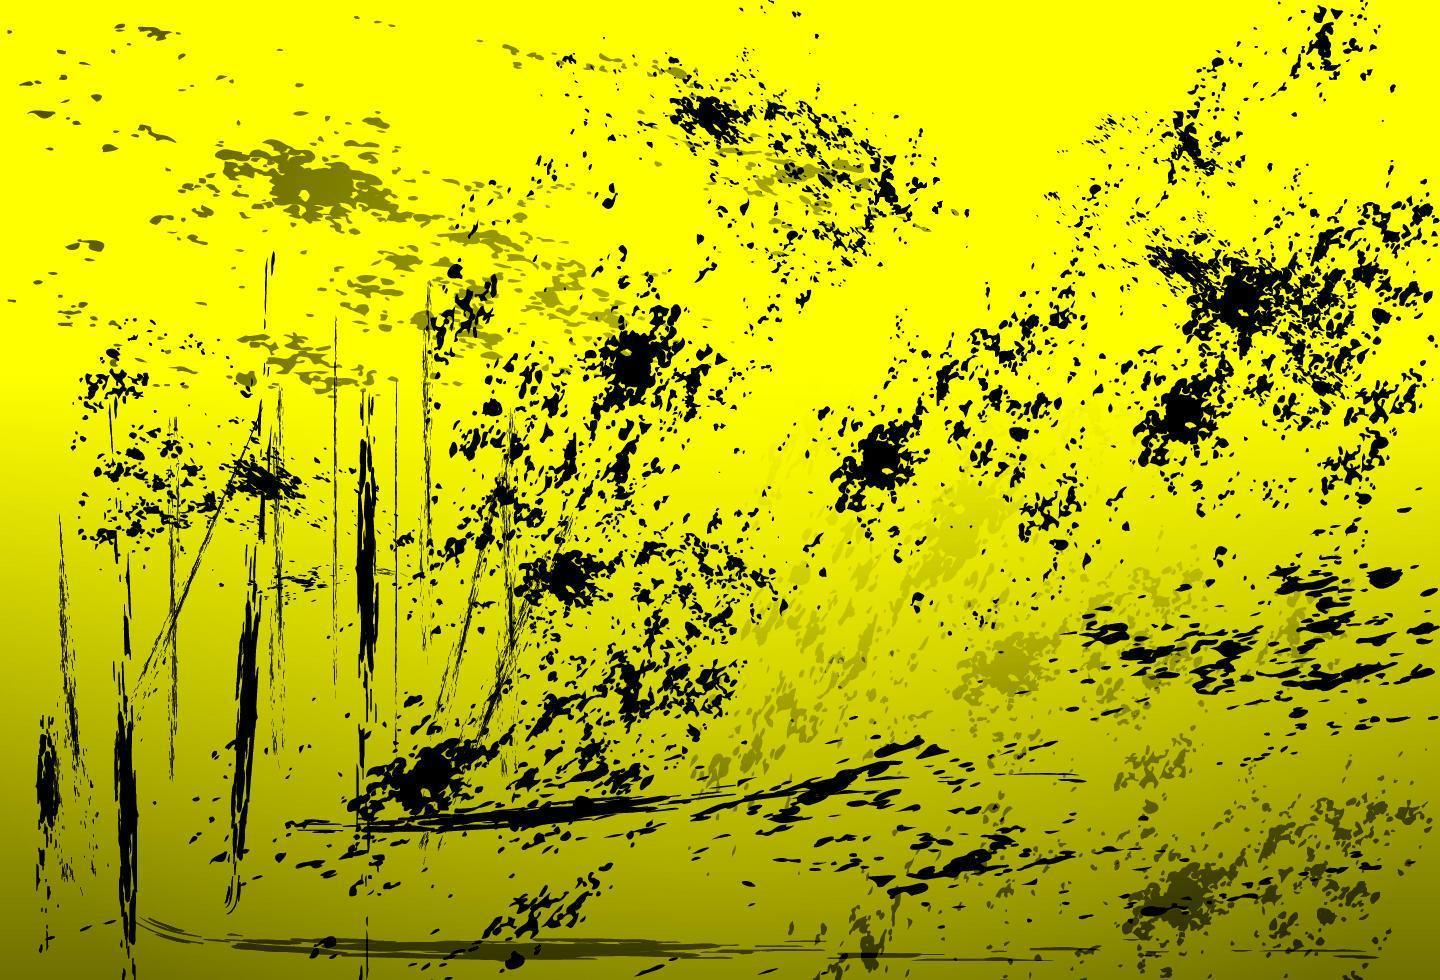 Distressed yellow background vector